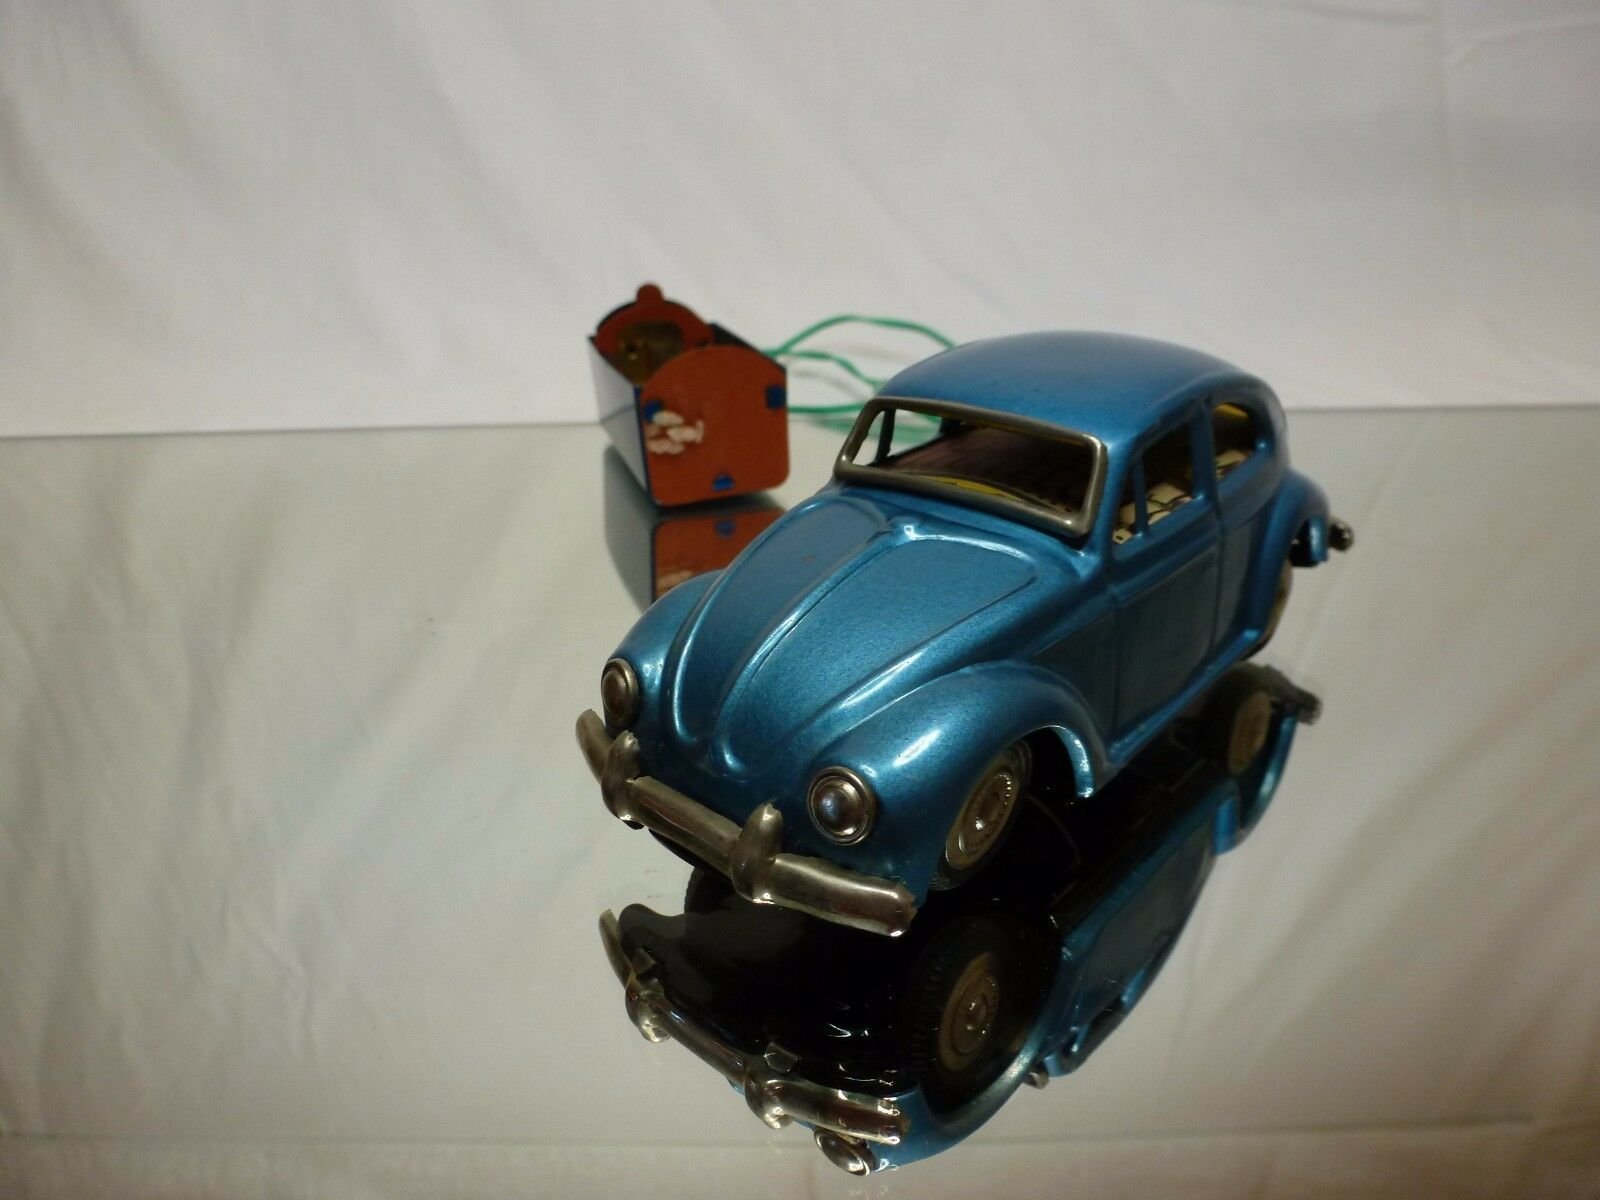 JAPAN TIN TOY BLECH VW VOLKSWAGEN BEETLE BEETLE BEETLE - RC - GOOD CONDITION 0c9385